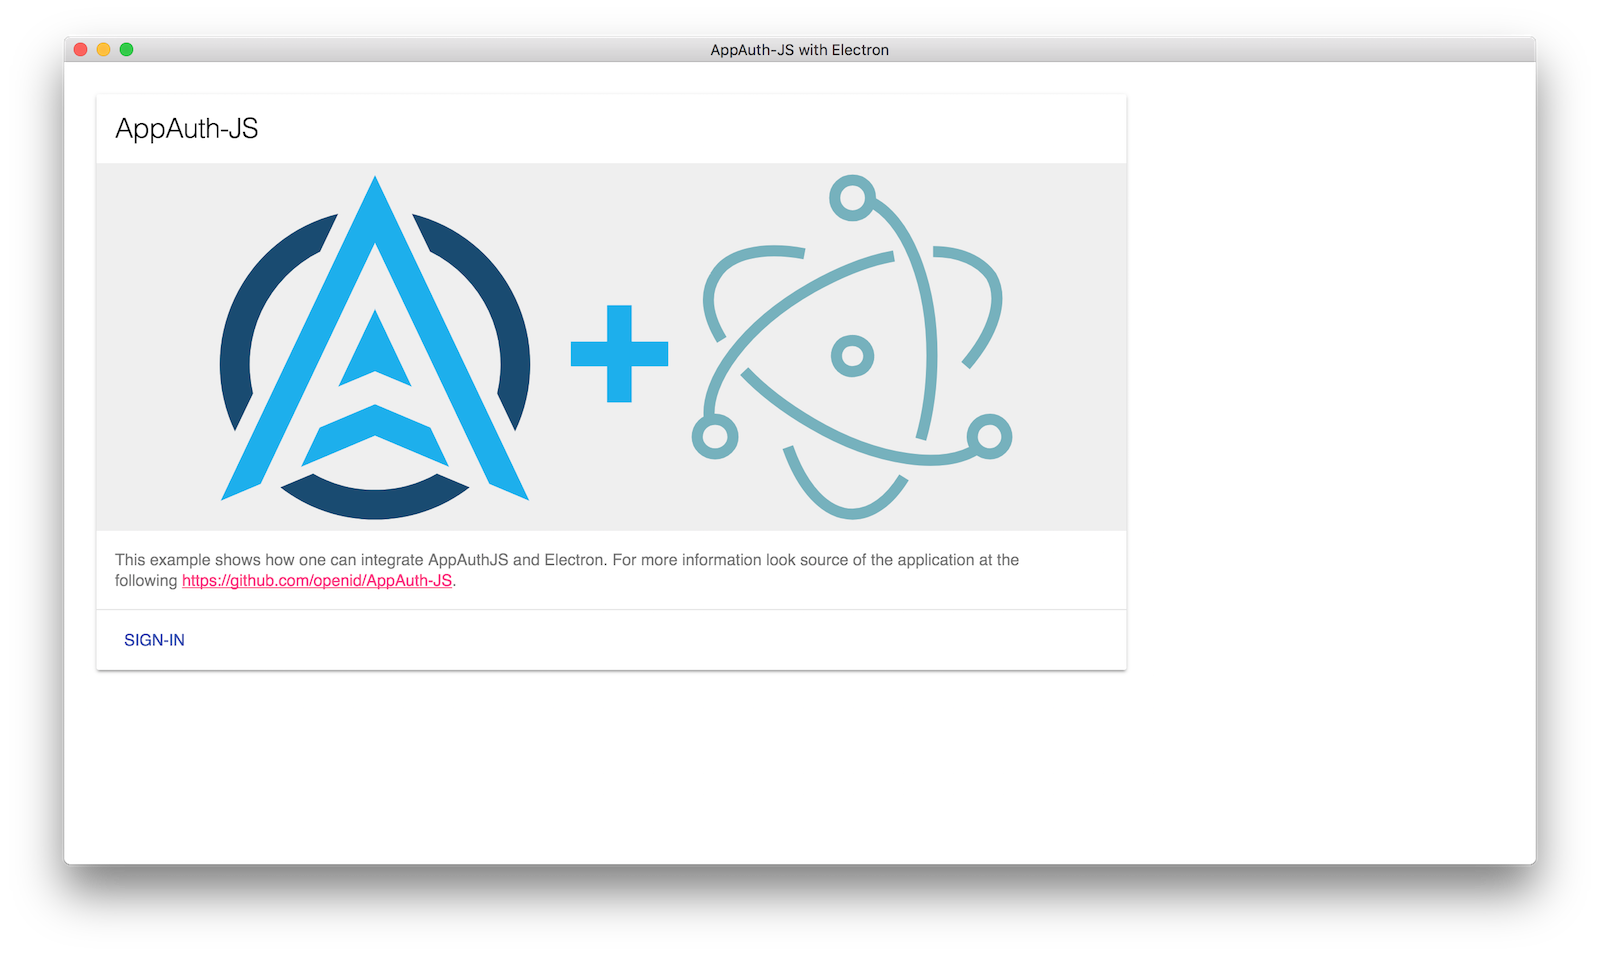 Use Your Web Dev Skills to Build a Desktop App with Electron